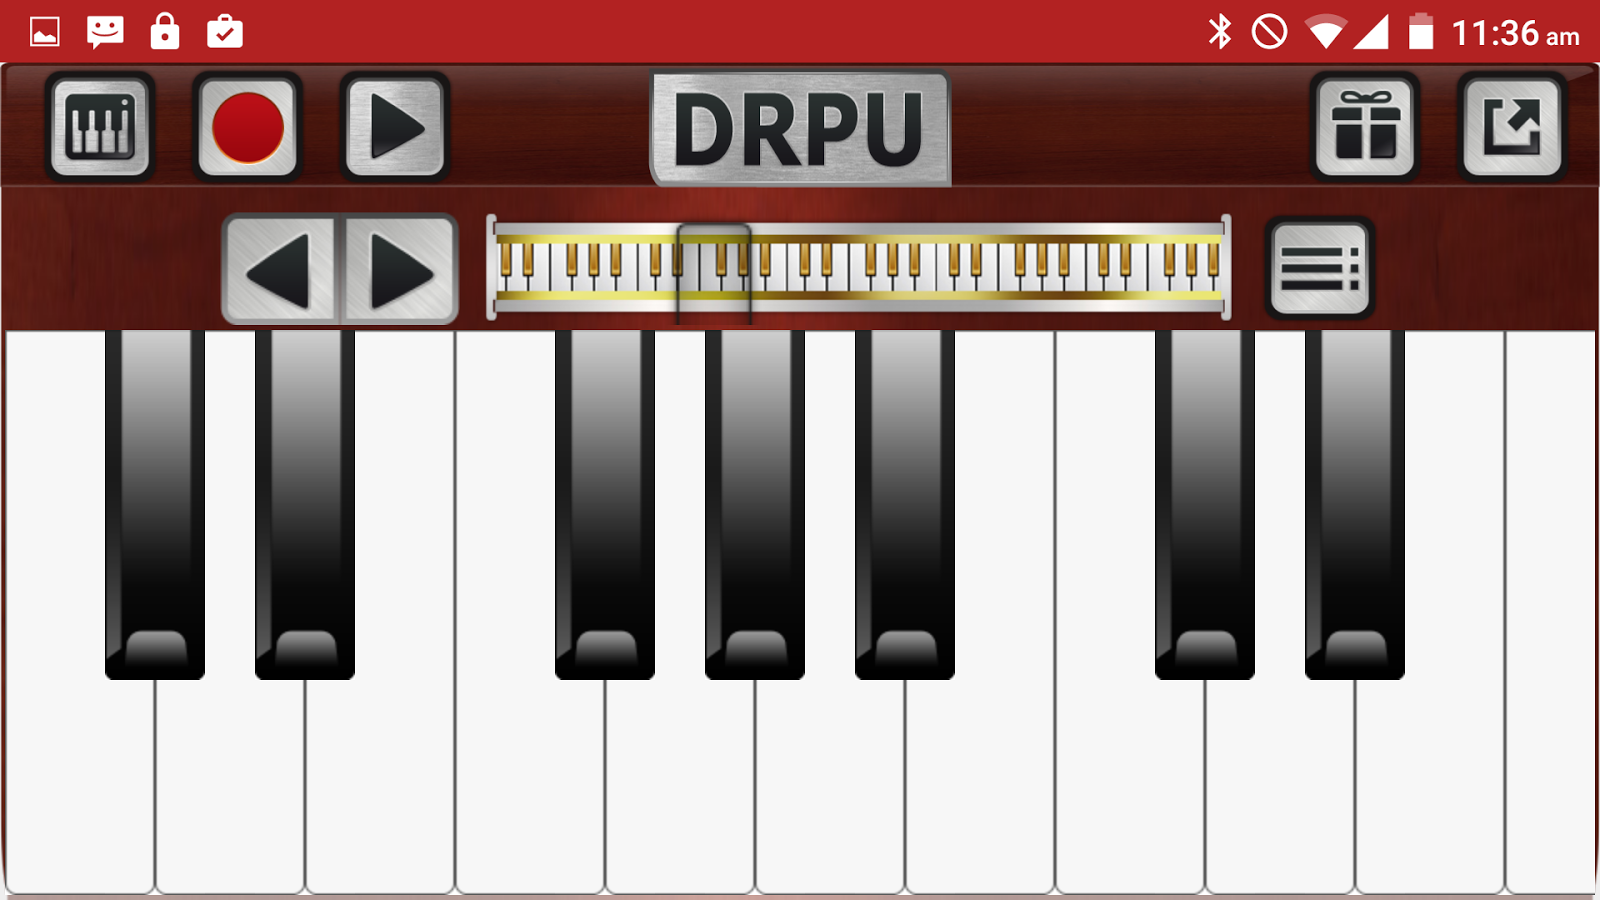 Piano Keyboard Music Pro Screenshot 5